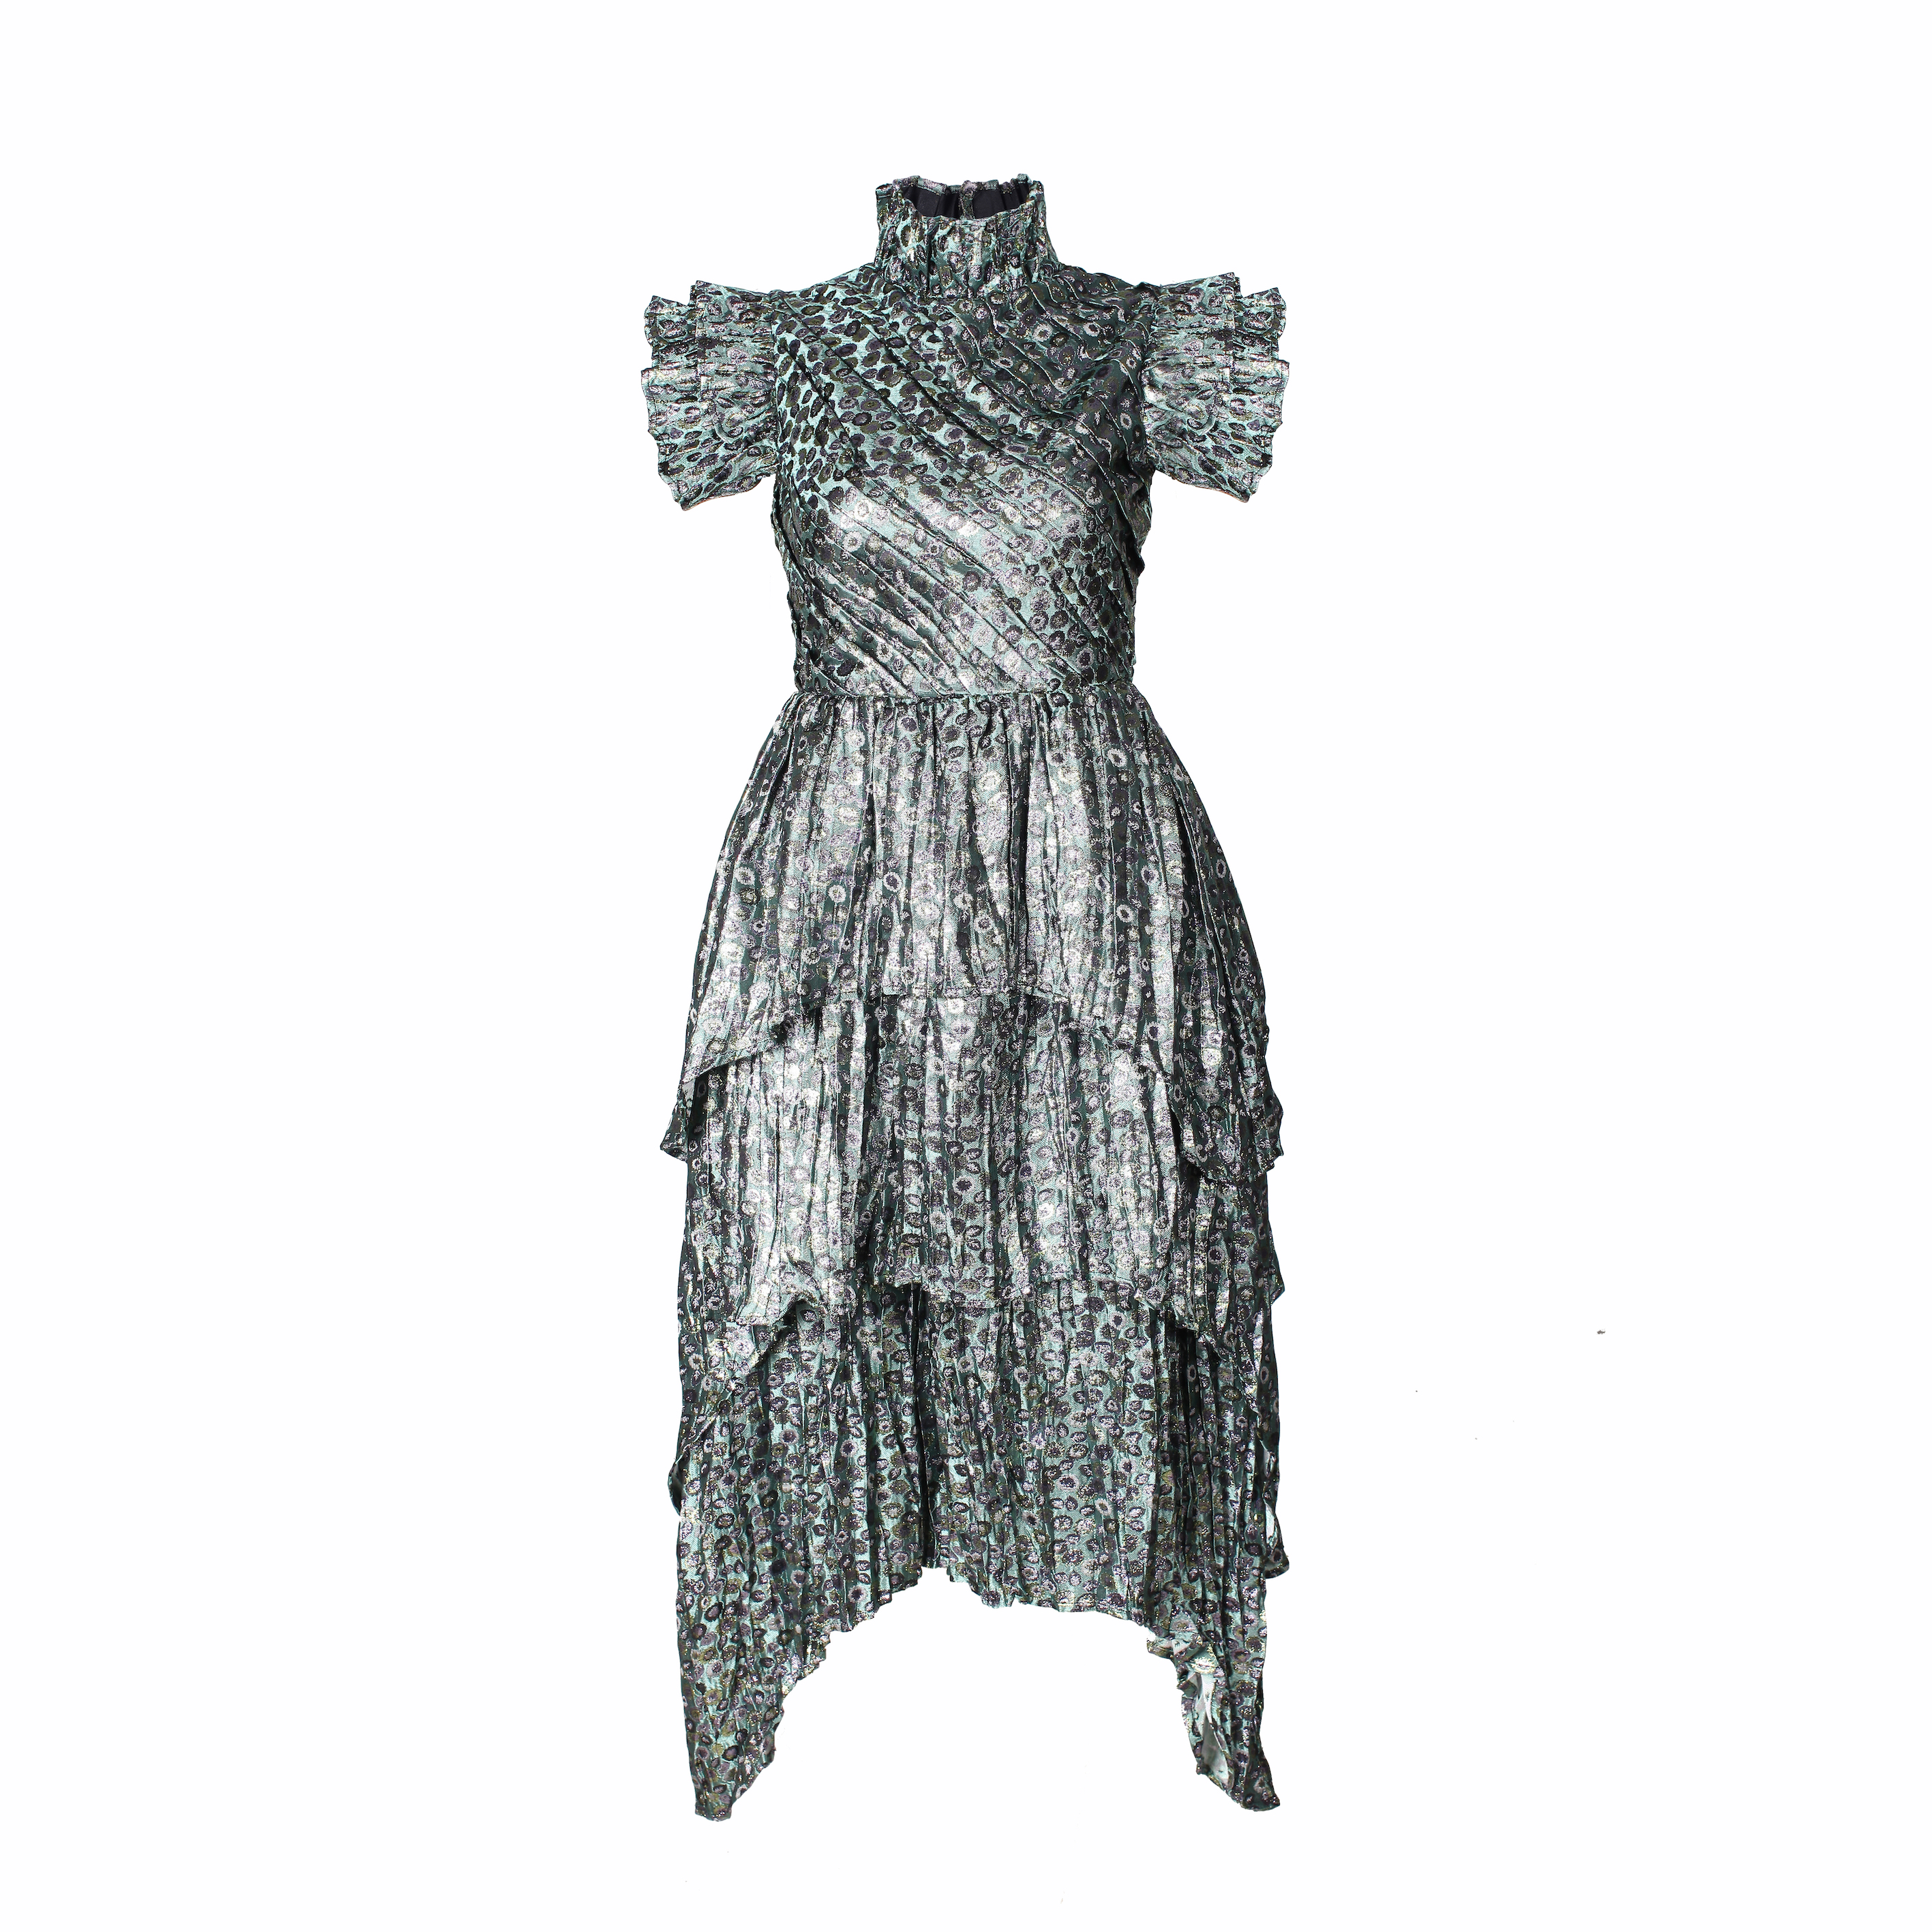 Bateau Dress by Rue Agthonis on curated-crowd.com